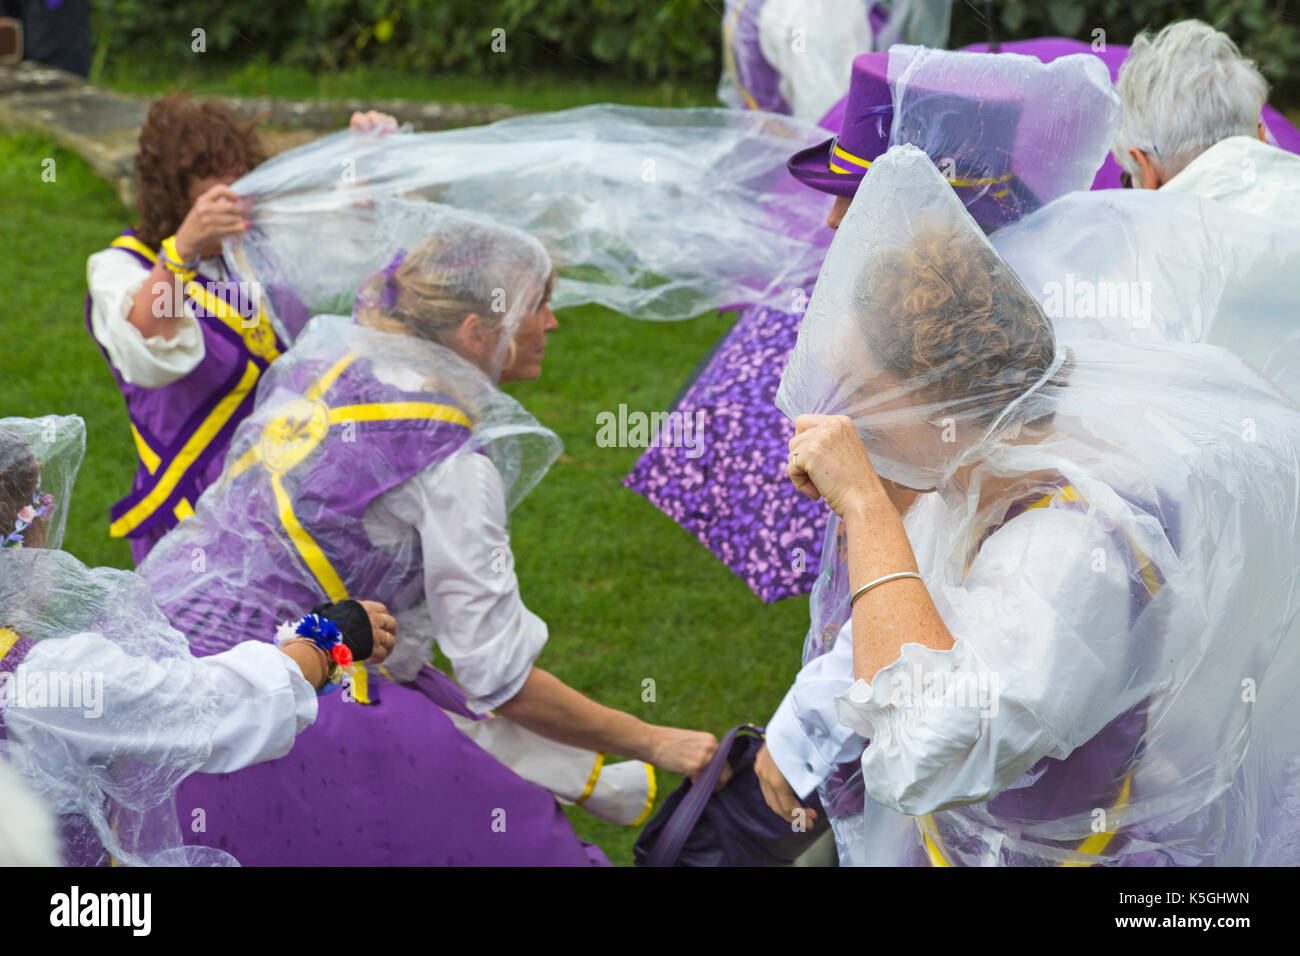 Swanage, Dorset, UK. 9th Sep, 2017. Crowds flock to the Swanage Folk Festival on the 25th anniversary to see the dance groups and music along the seafront. The mixed weather, sunshine and rain, doesn't deter their spirits.  Members of Fleur de Lys putting on ponchos. Credit: Carolyn Jenkins/Alamy Live News - Stock Image